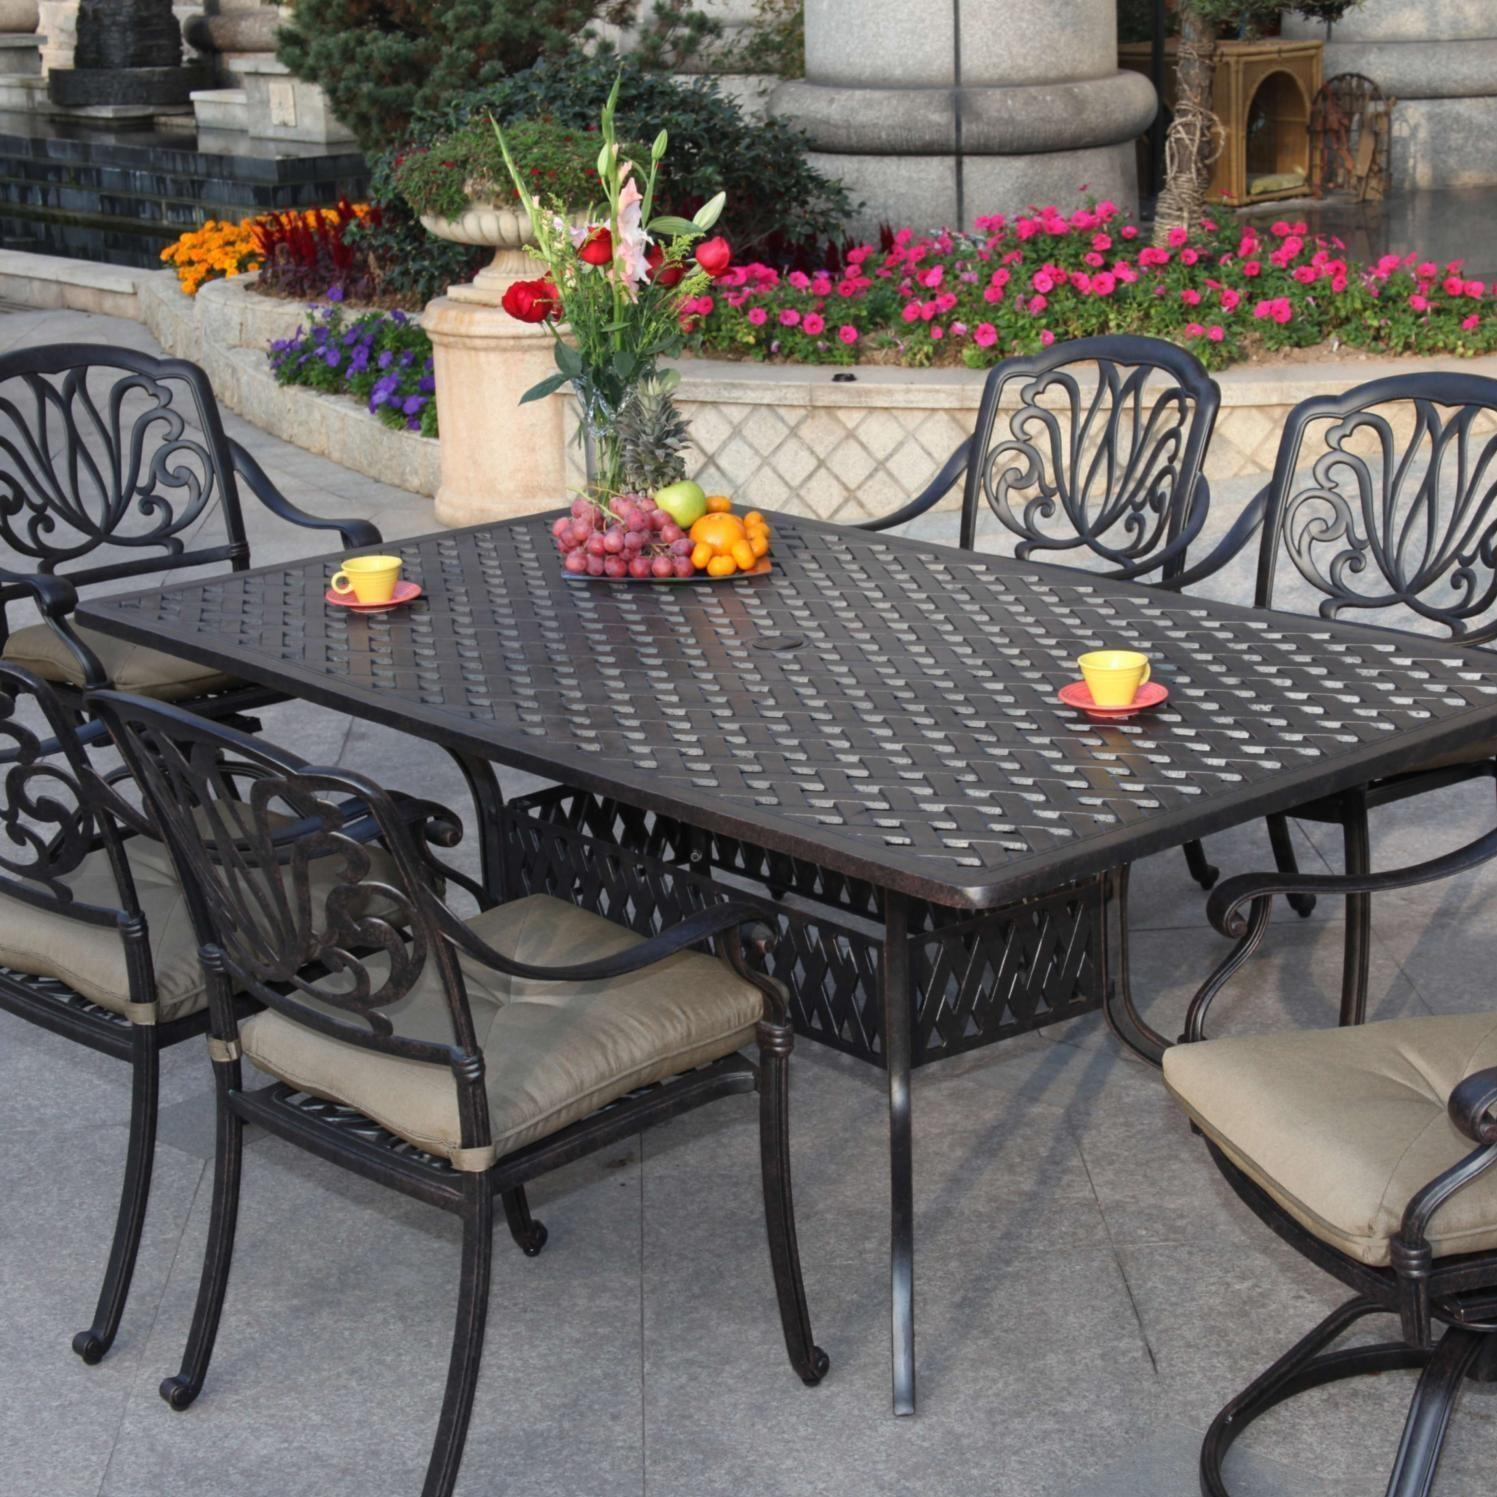 Budget Patio Dining Set: Cheap Patio Dining Sets Creativity